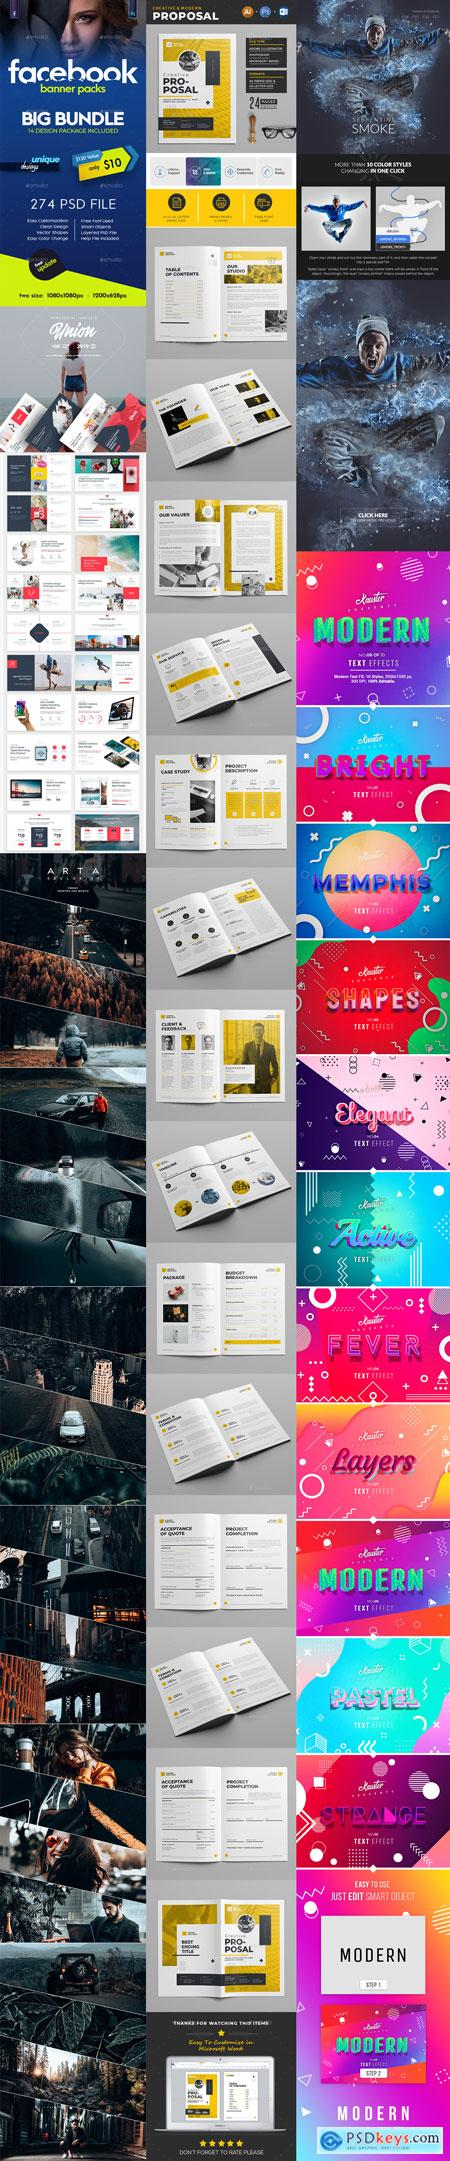 Flyer Template Vip Part6 20-FEB-2020 PREVIEW